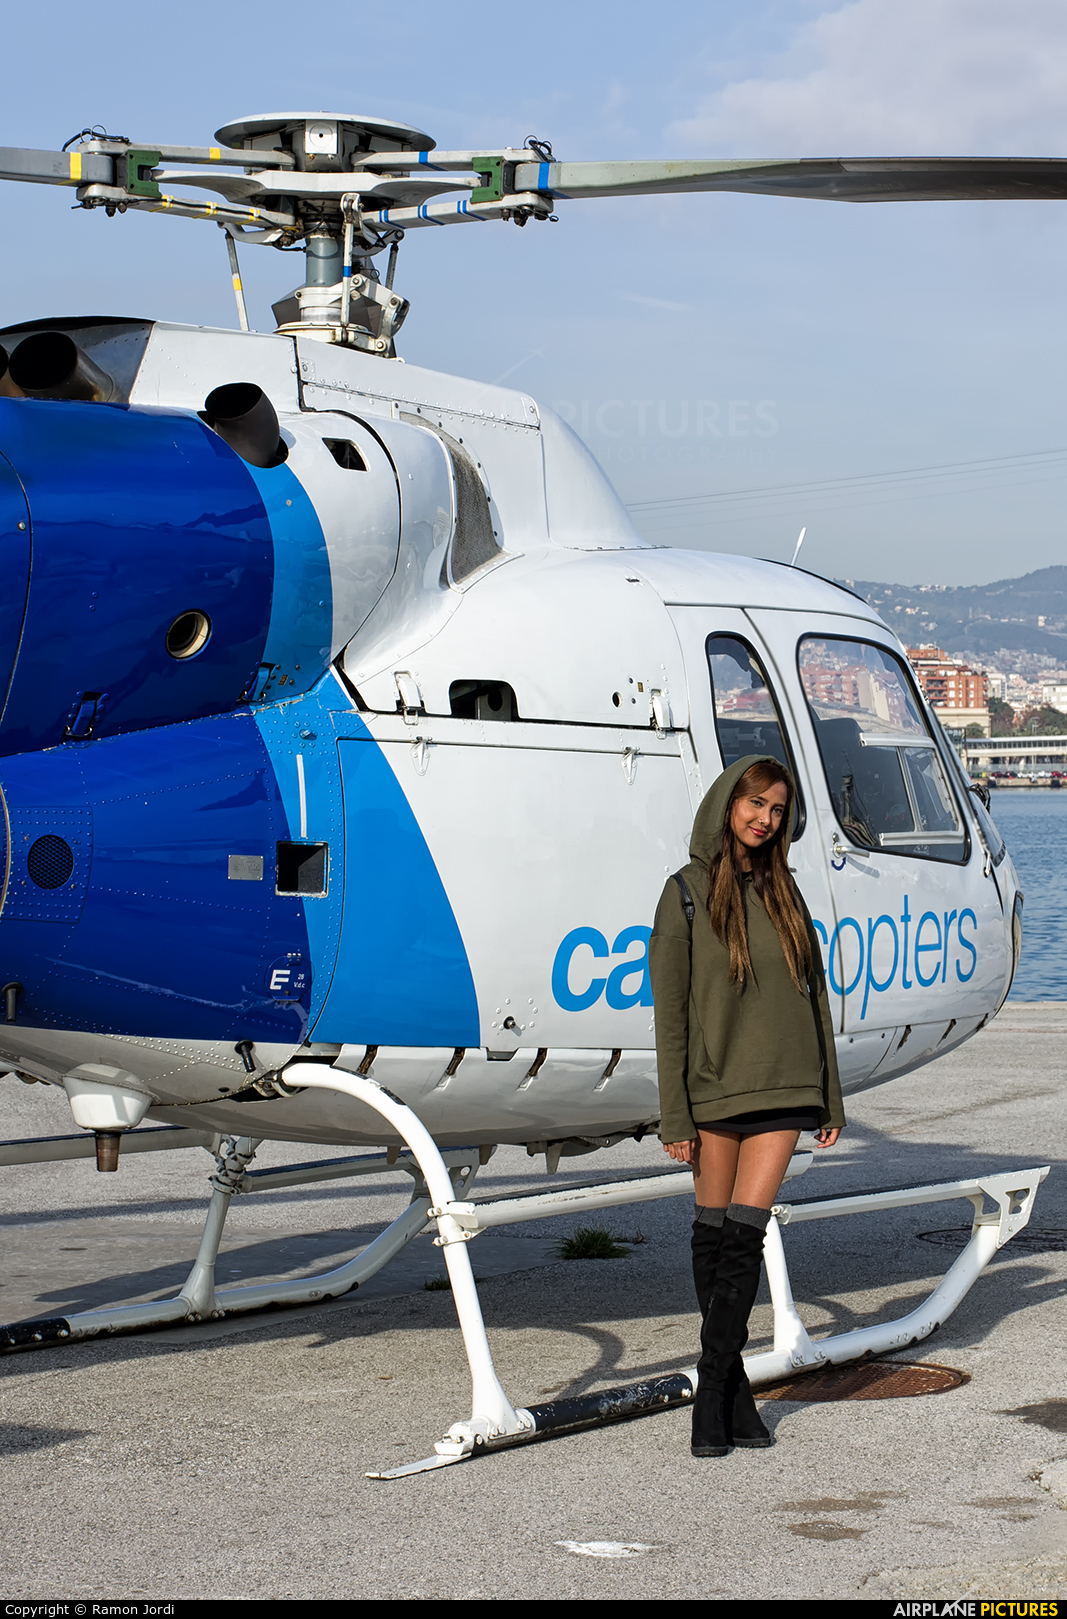 - Aviation Glamour EC-JYJ aircraft at Autoridad Portuaria de Barcelona heliport